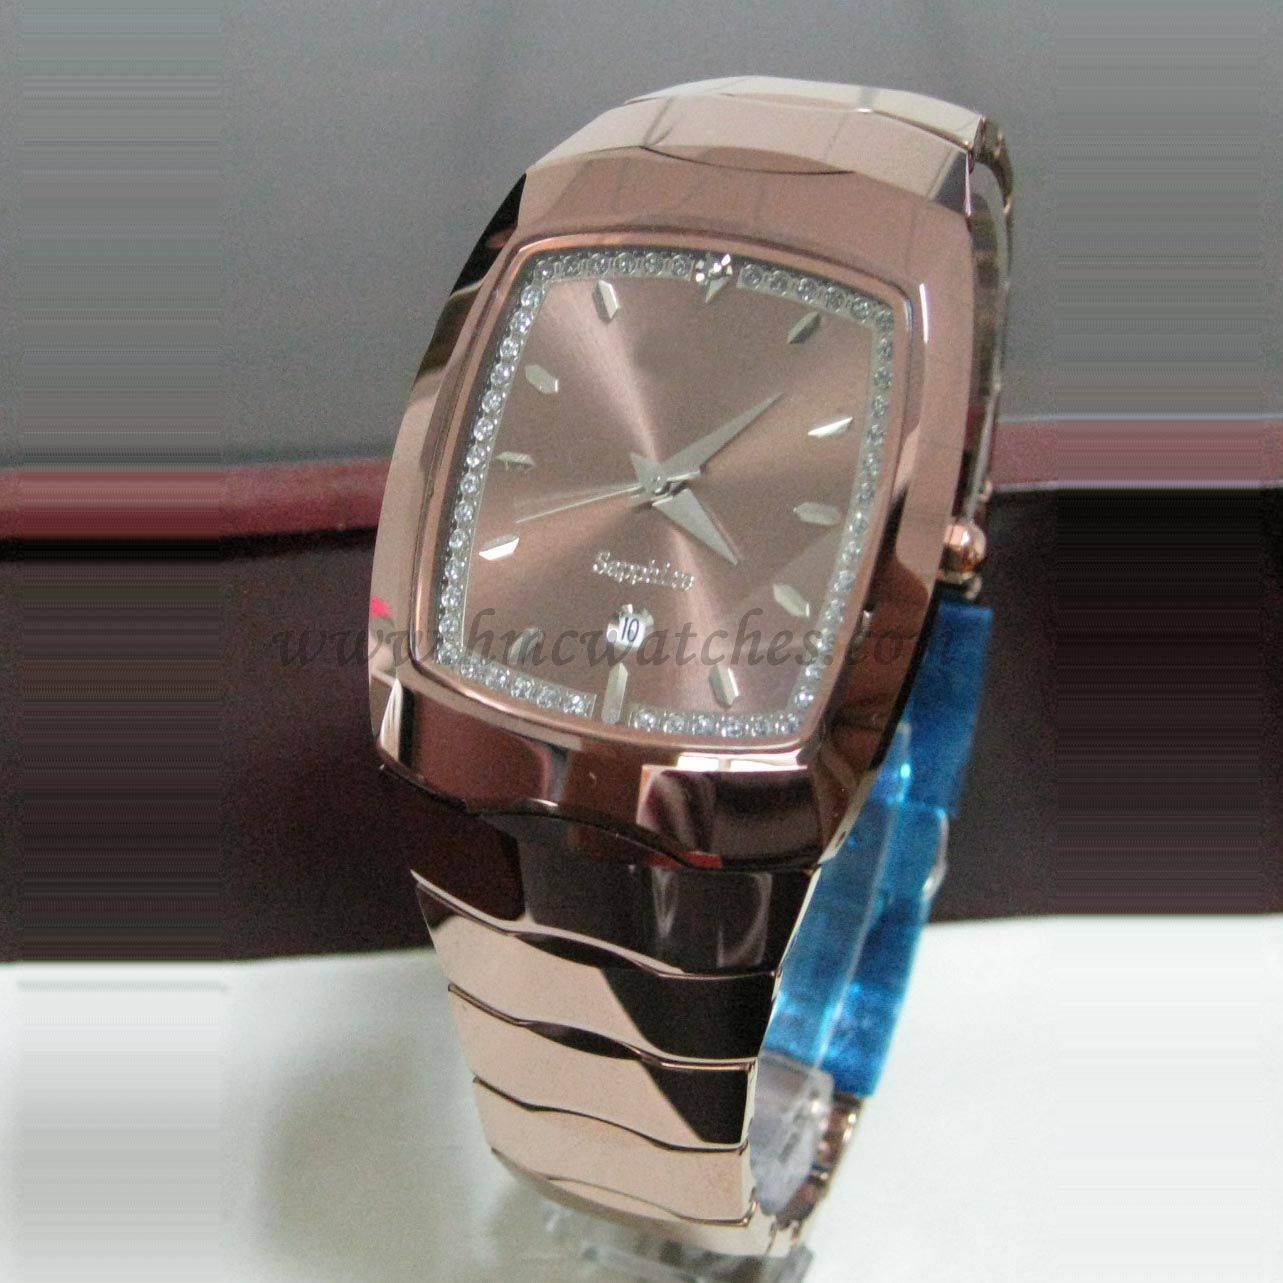 3 ATM waterproof tungsten wrist watches, rose gold plated quartz watches men size